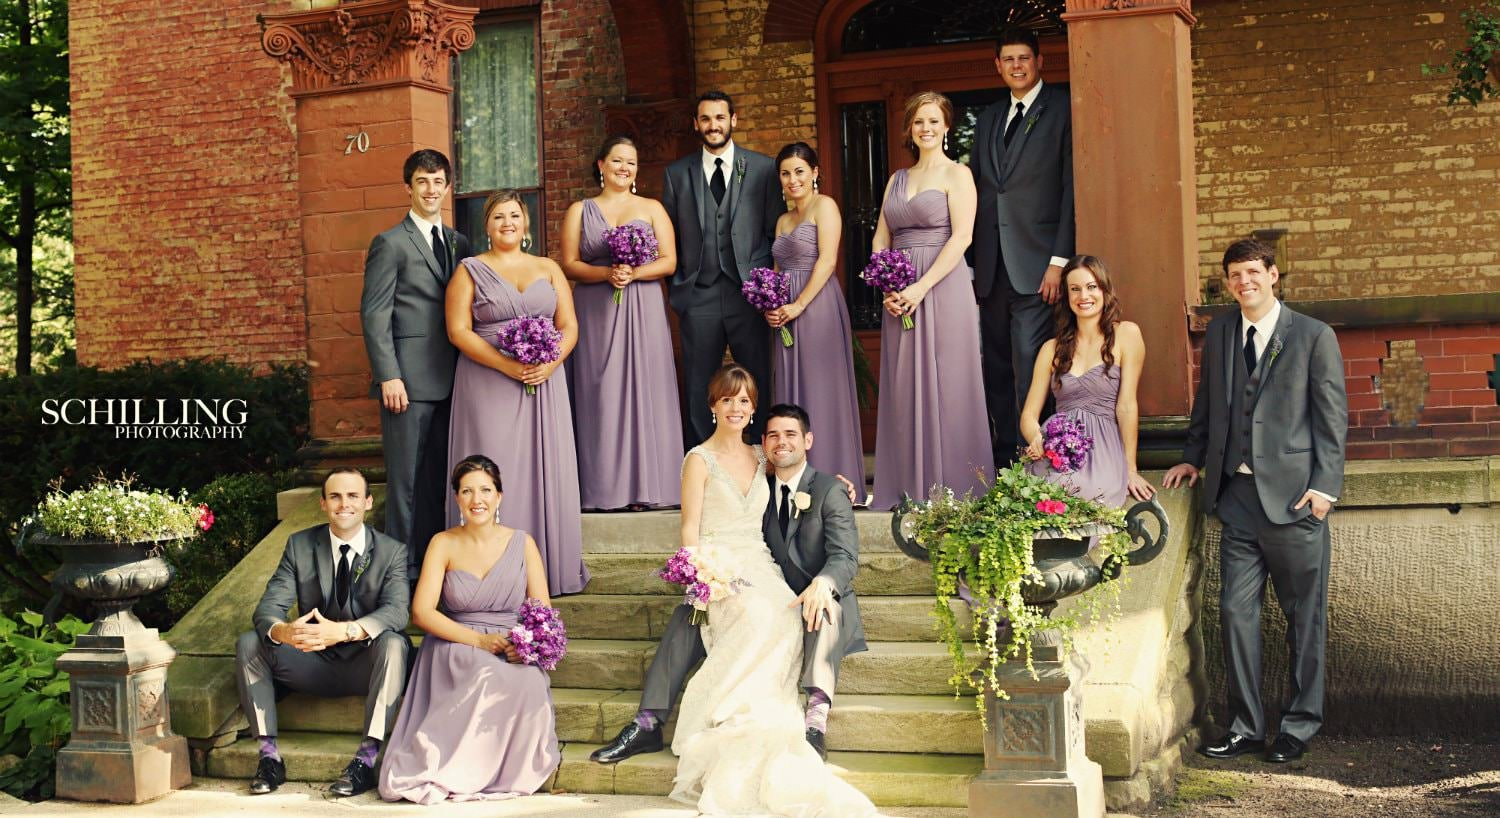 Bride and groom with five groomsmen in grey suits and five bridesmaids in purple dresses outside on the mansion steps